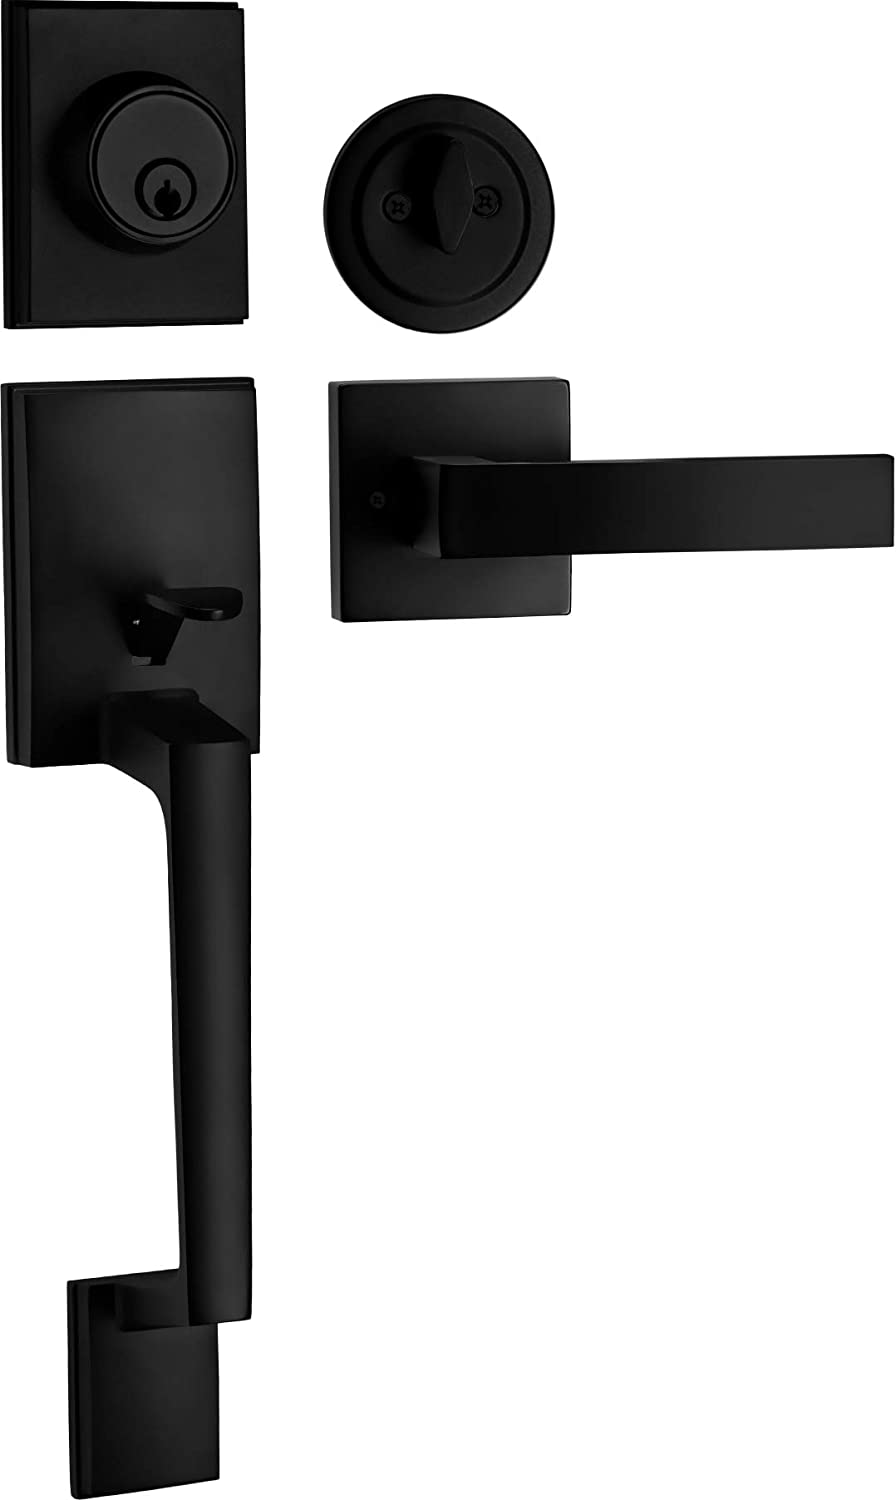 Berlin Modisch Single Cylinder HandleSet with Lever Door Handle (for Entrance and Front Door) Reversible for Right and Left Handed and a Single Cylinder deadbolt Handle Set Iron Black Finish